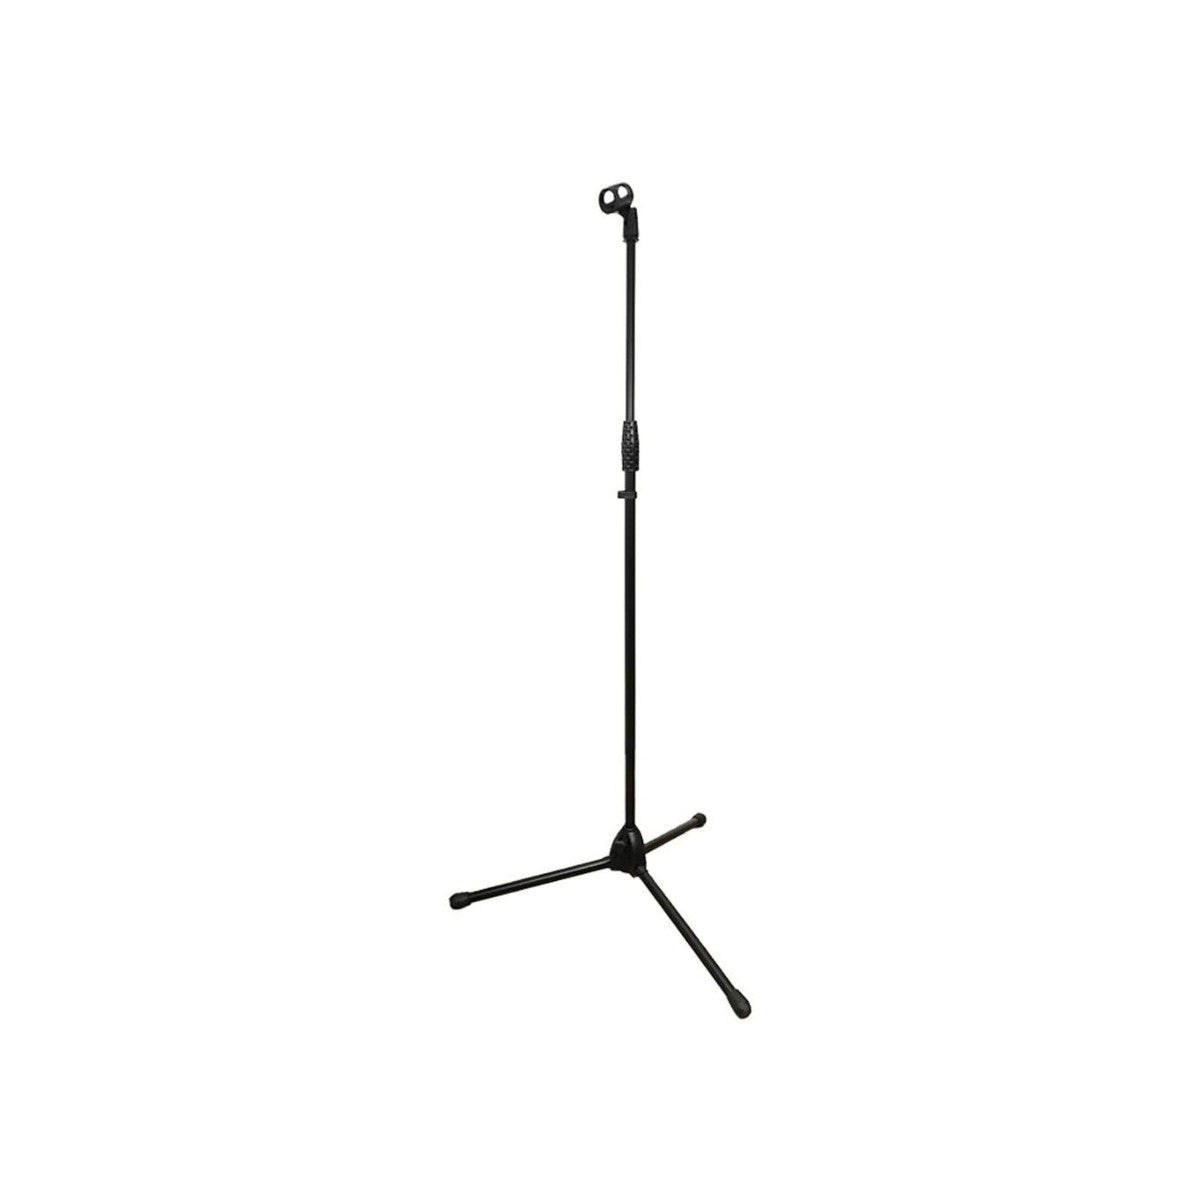 Rocket Microphone Stand